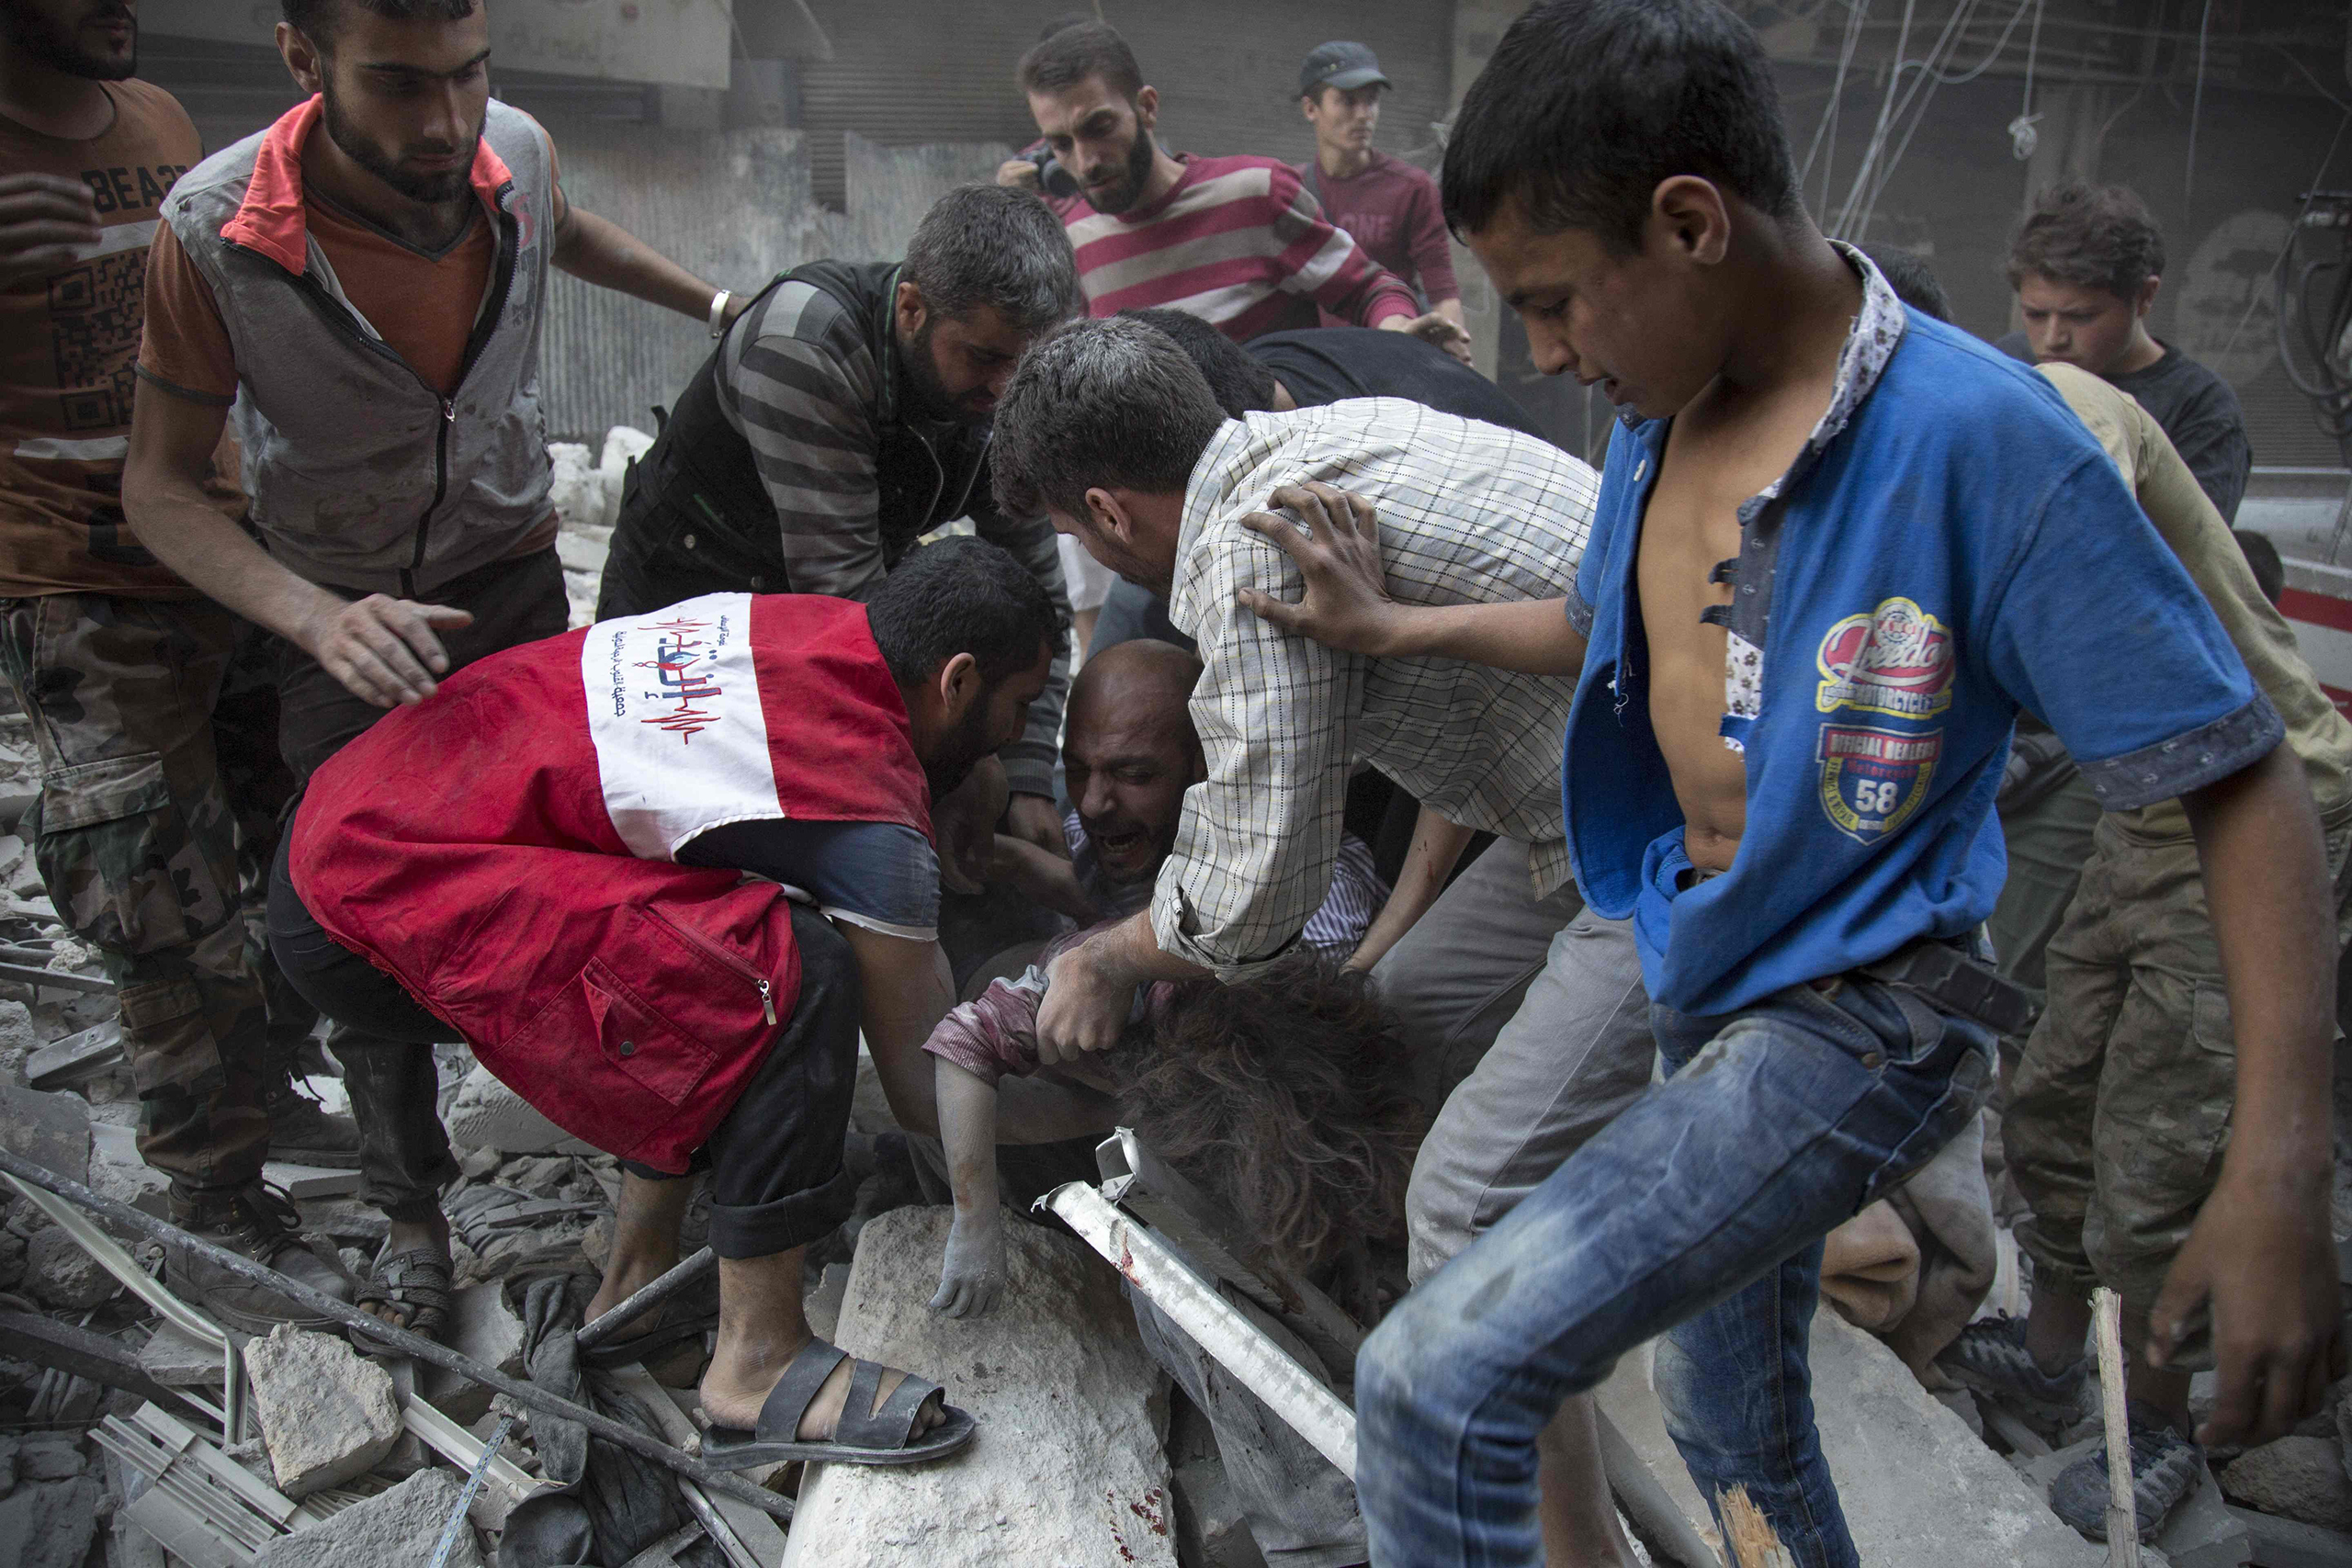 Syrians surround a man as he cries over the body of his child after she was pulled out from the rubble of a building following government airstrikes on a rebel-held neighborhood of Aleppo on Sept. 27, 2016.